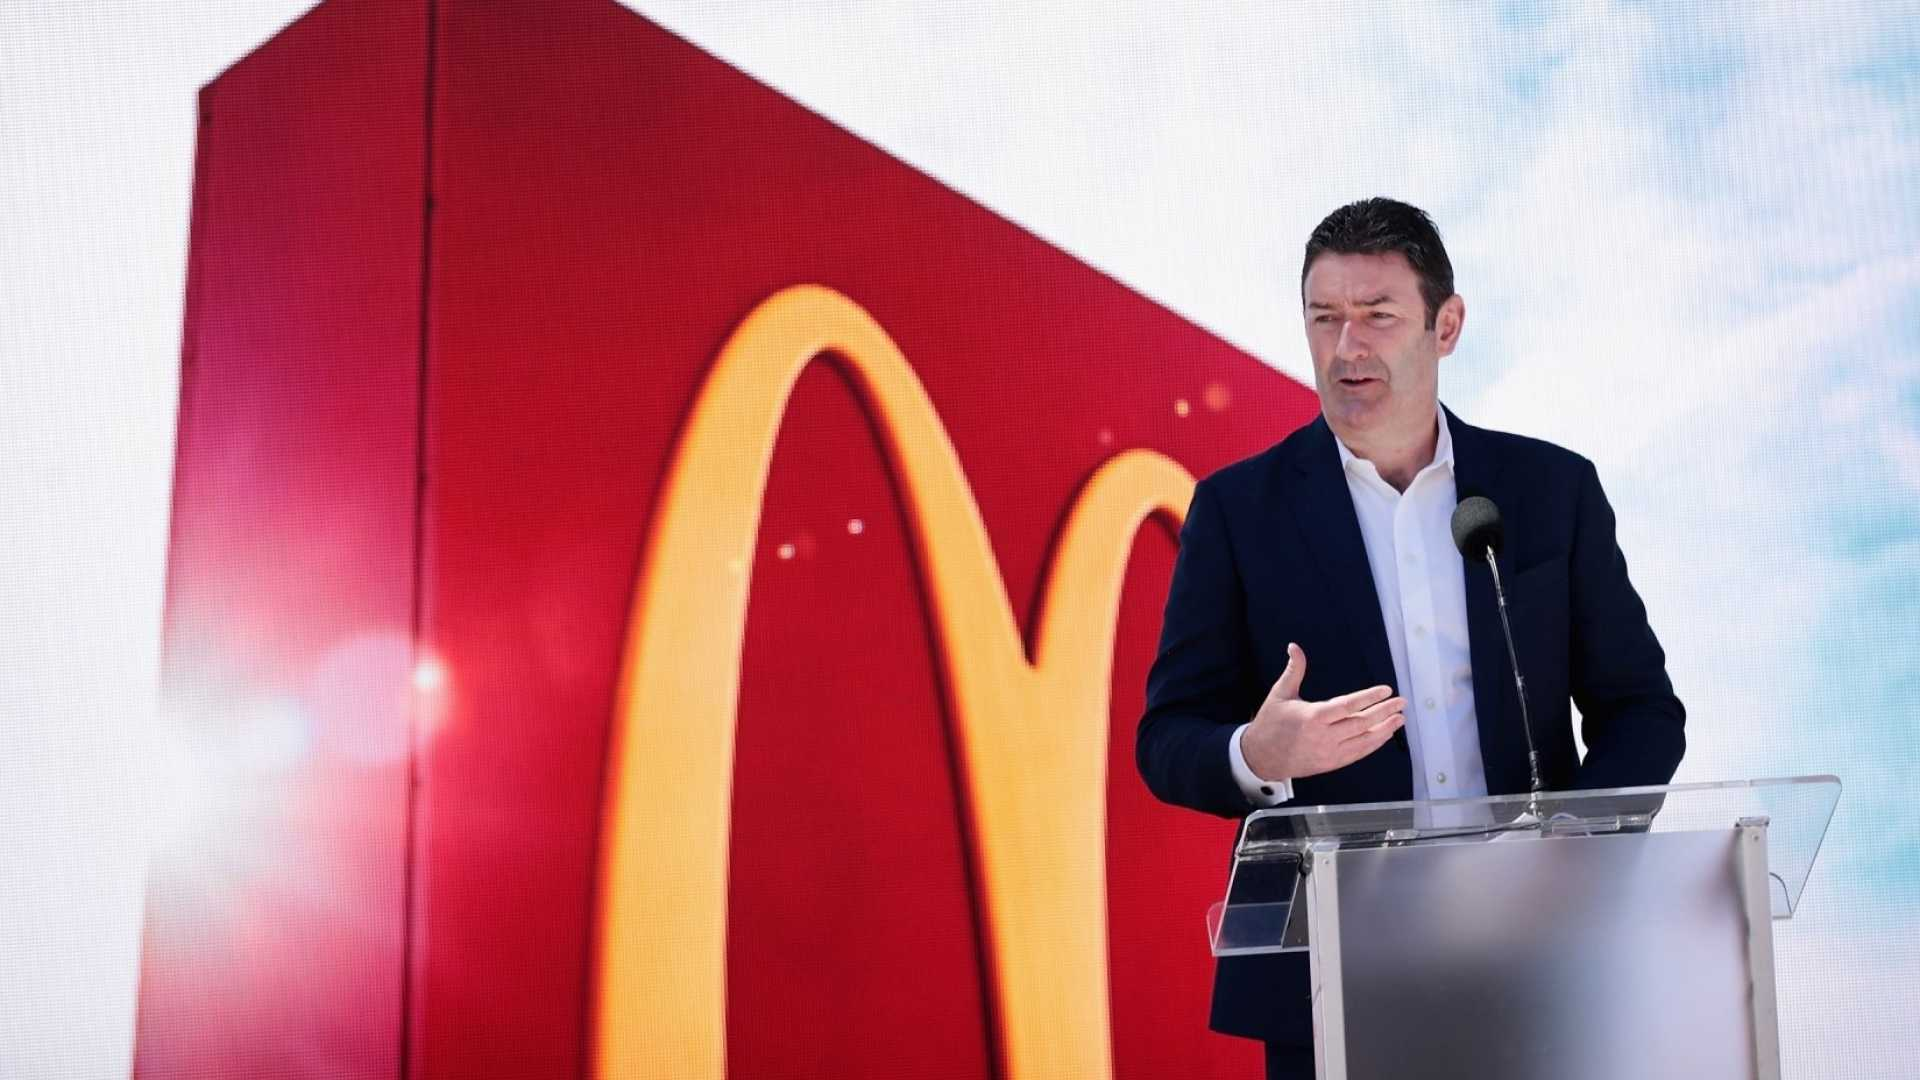 In a Stunning Announcement, McDonald's Reveals New Breakfast Menu in Bid to Get Back on Top